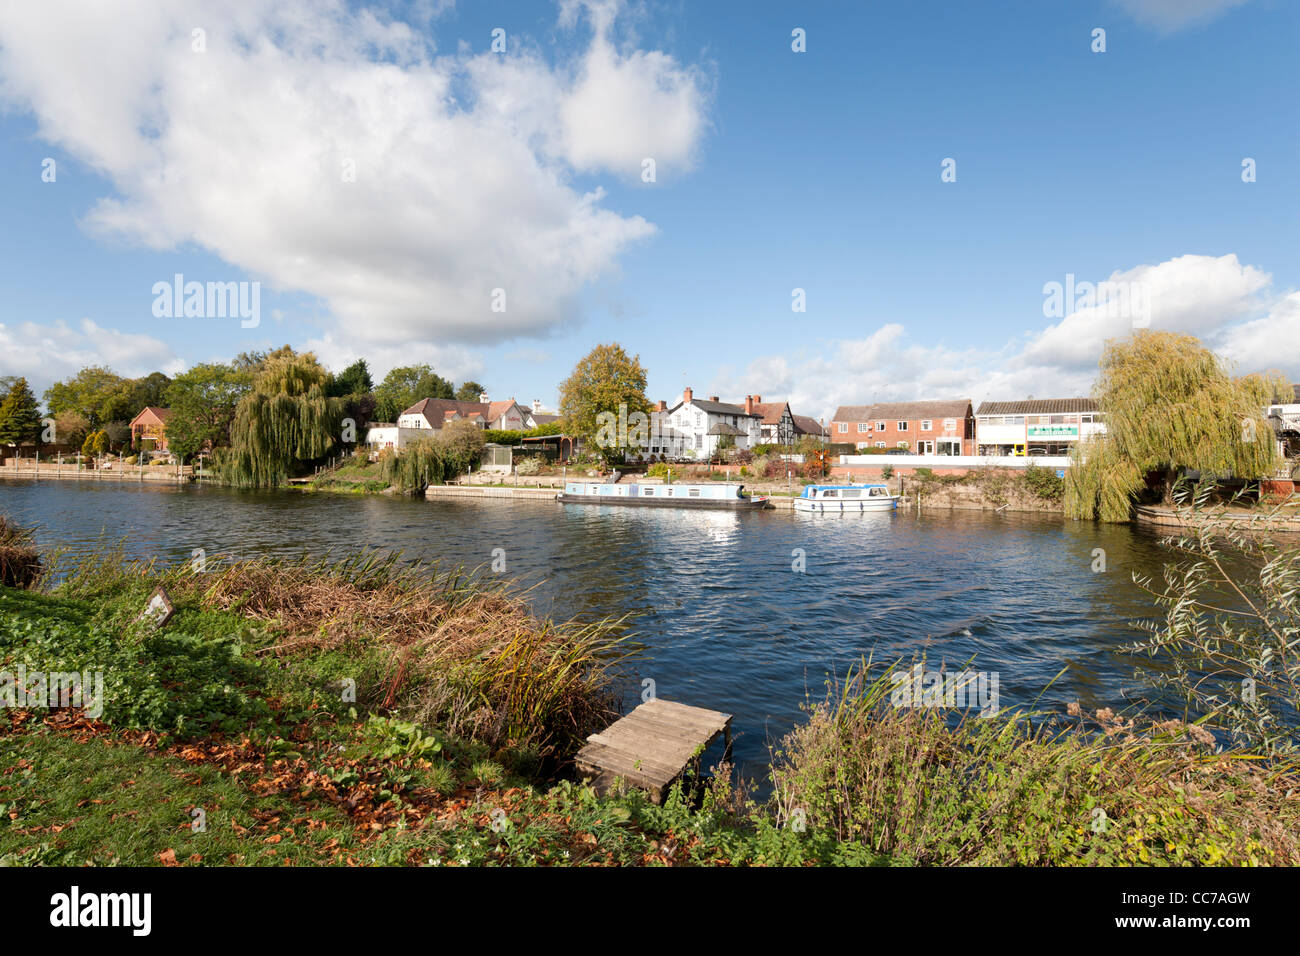 A view across the River Avon, Bidford-on-Avon, Warwickshire, England, UK Stock Photo